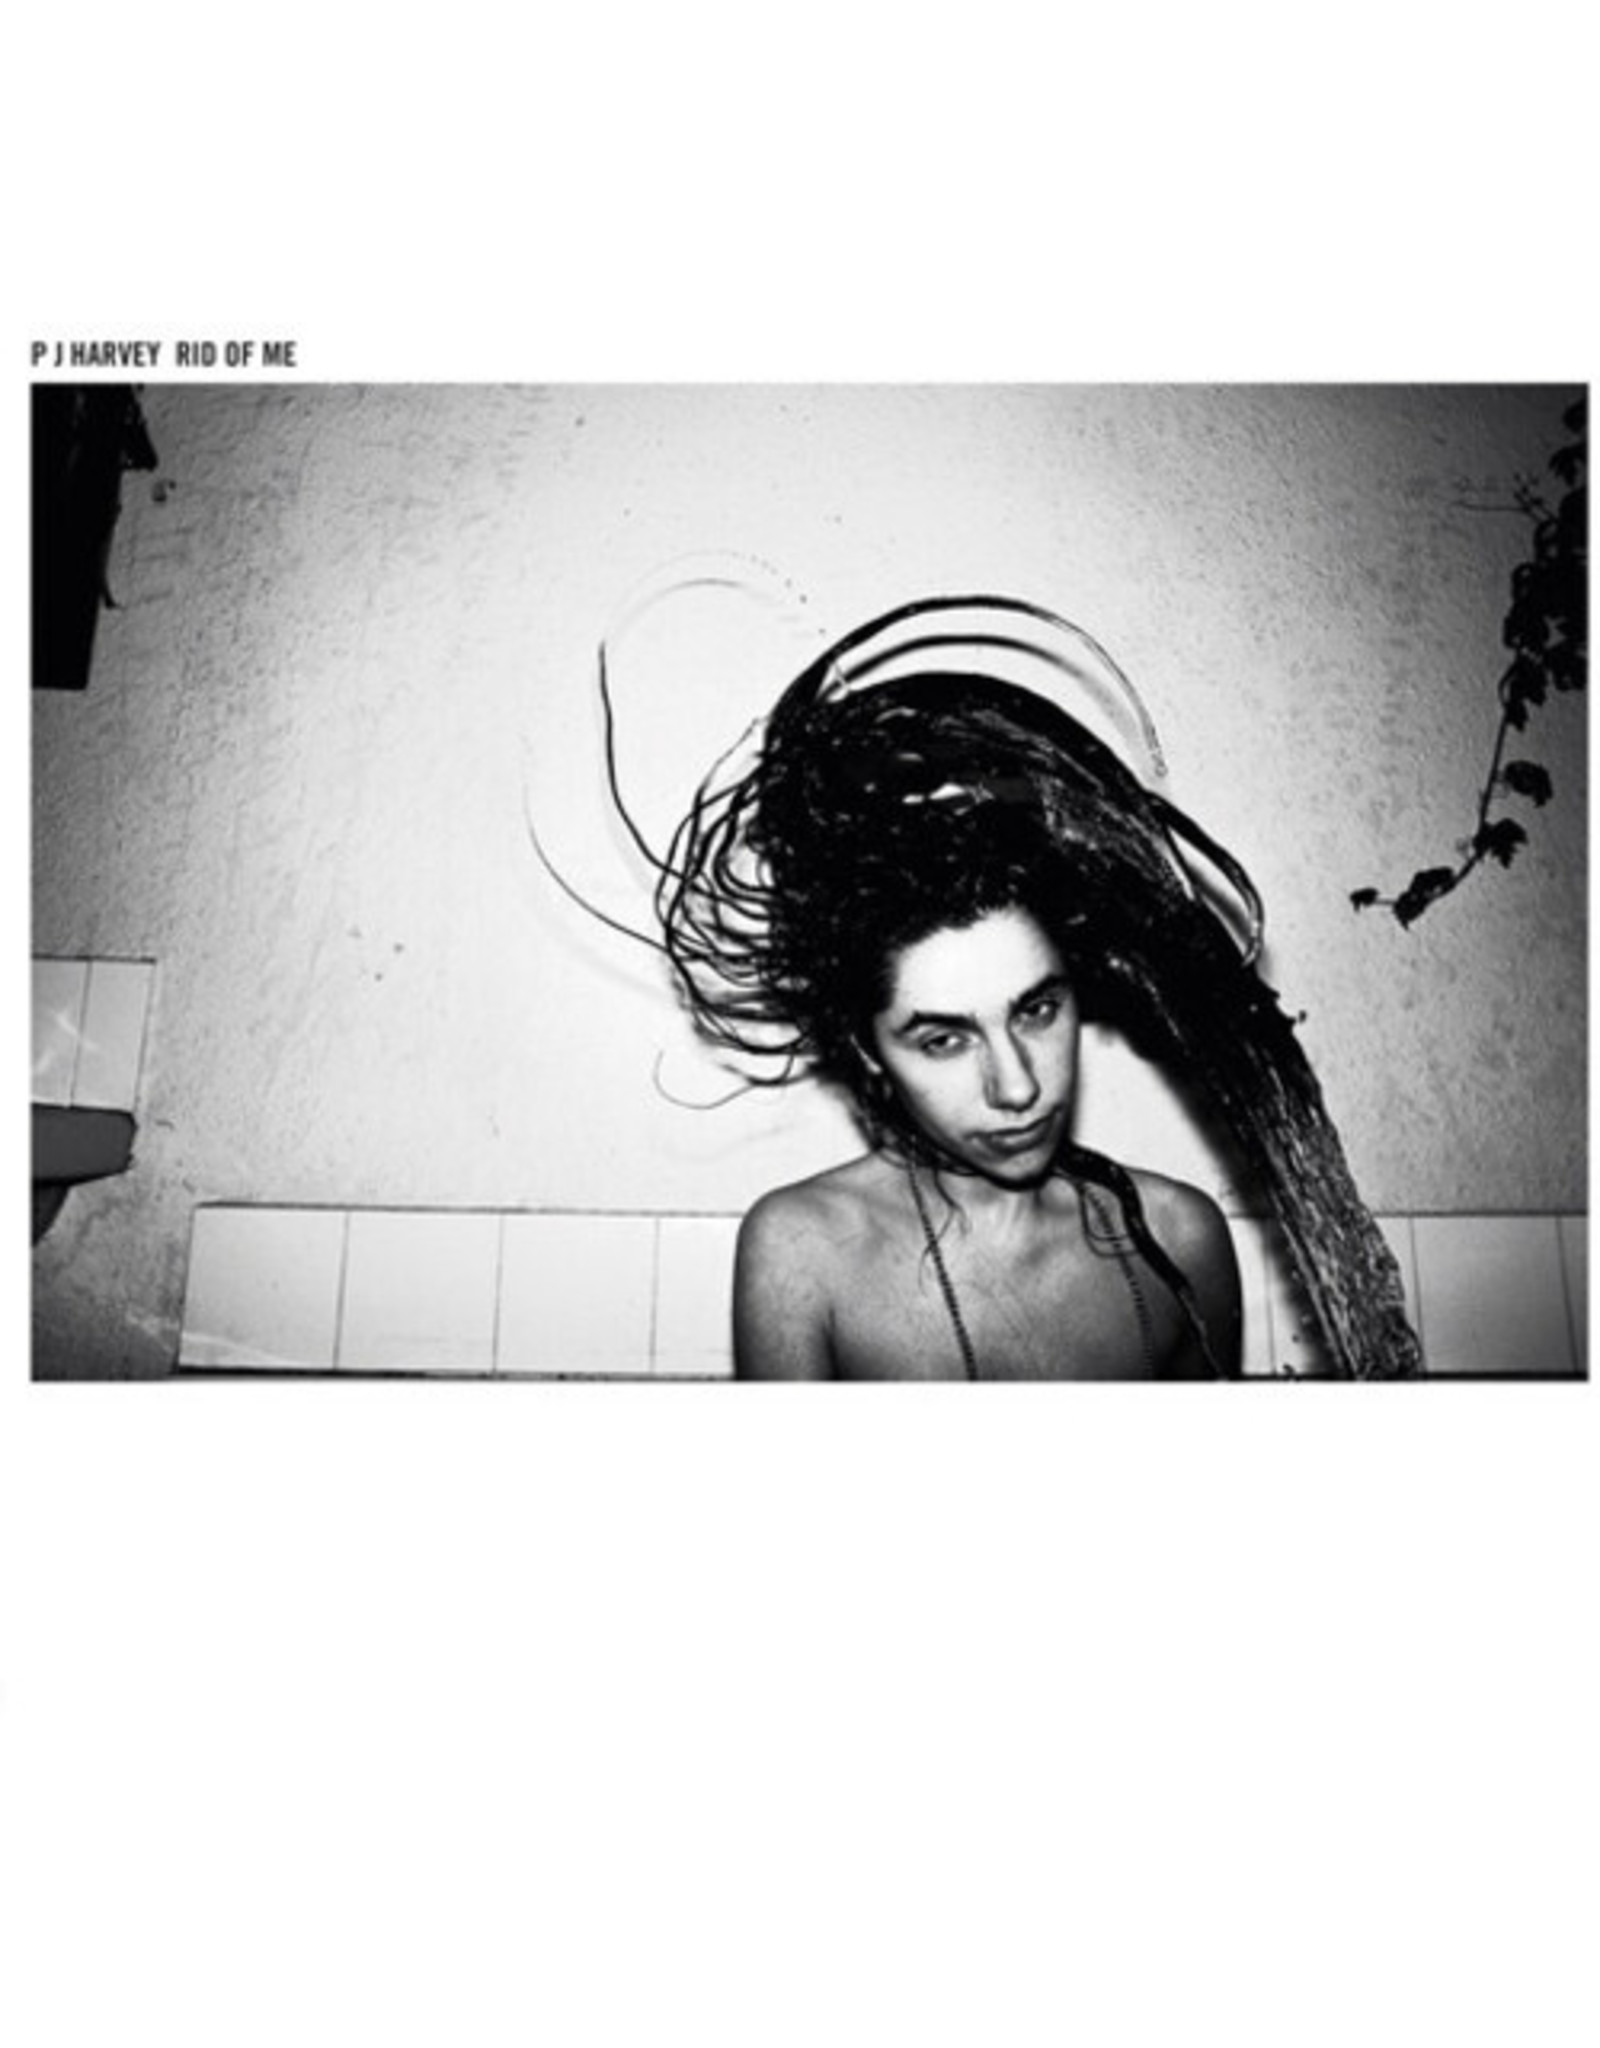 New Vinyl PJ Harvey - Rid Of Me (Reissue) LP